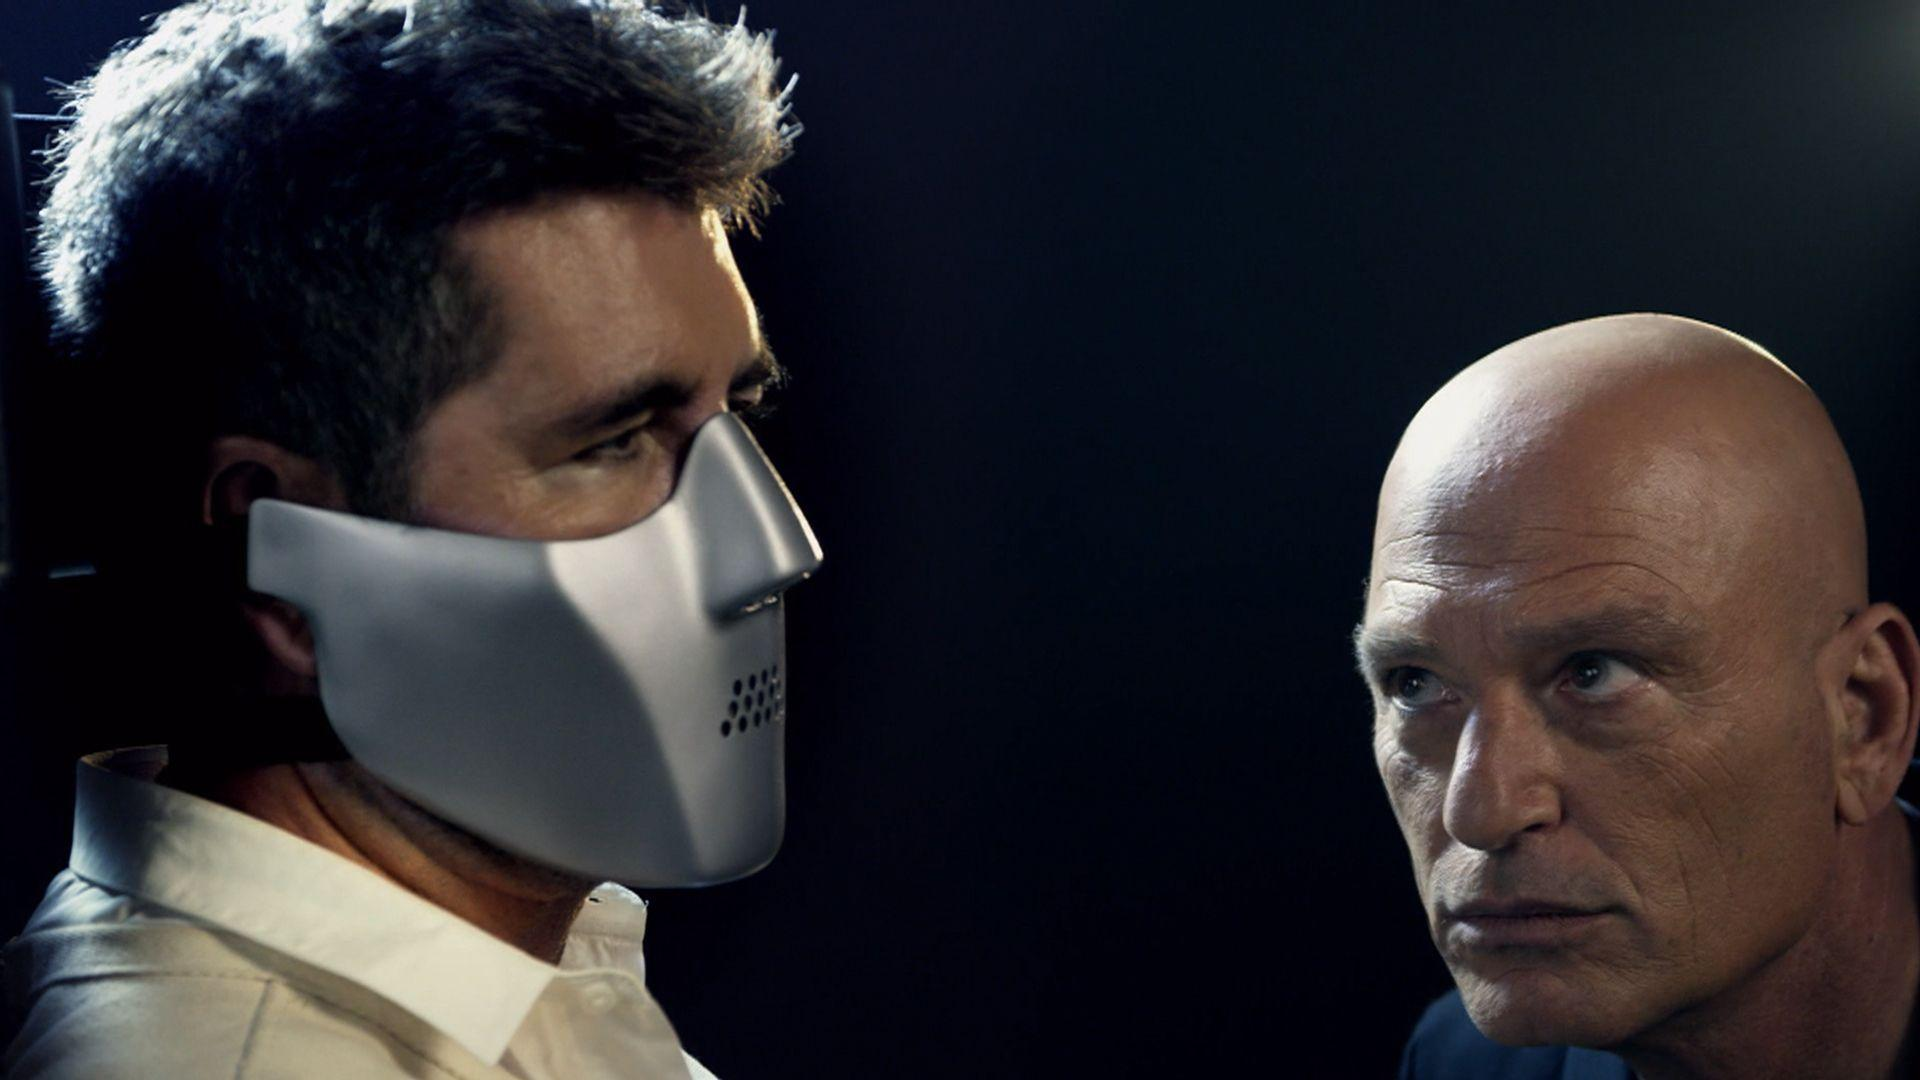 Simon Cowell is way too good channeling Hannibal Lecter in new